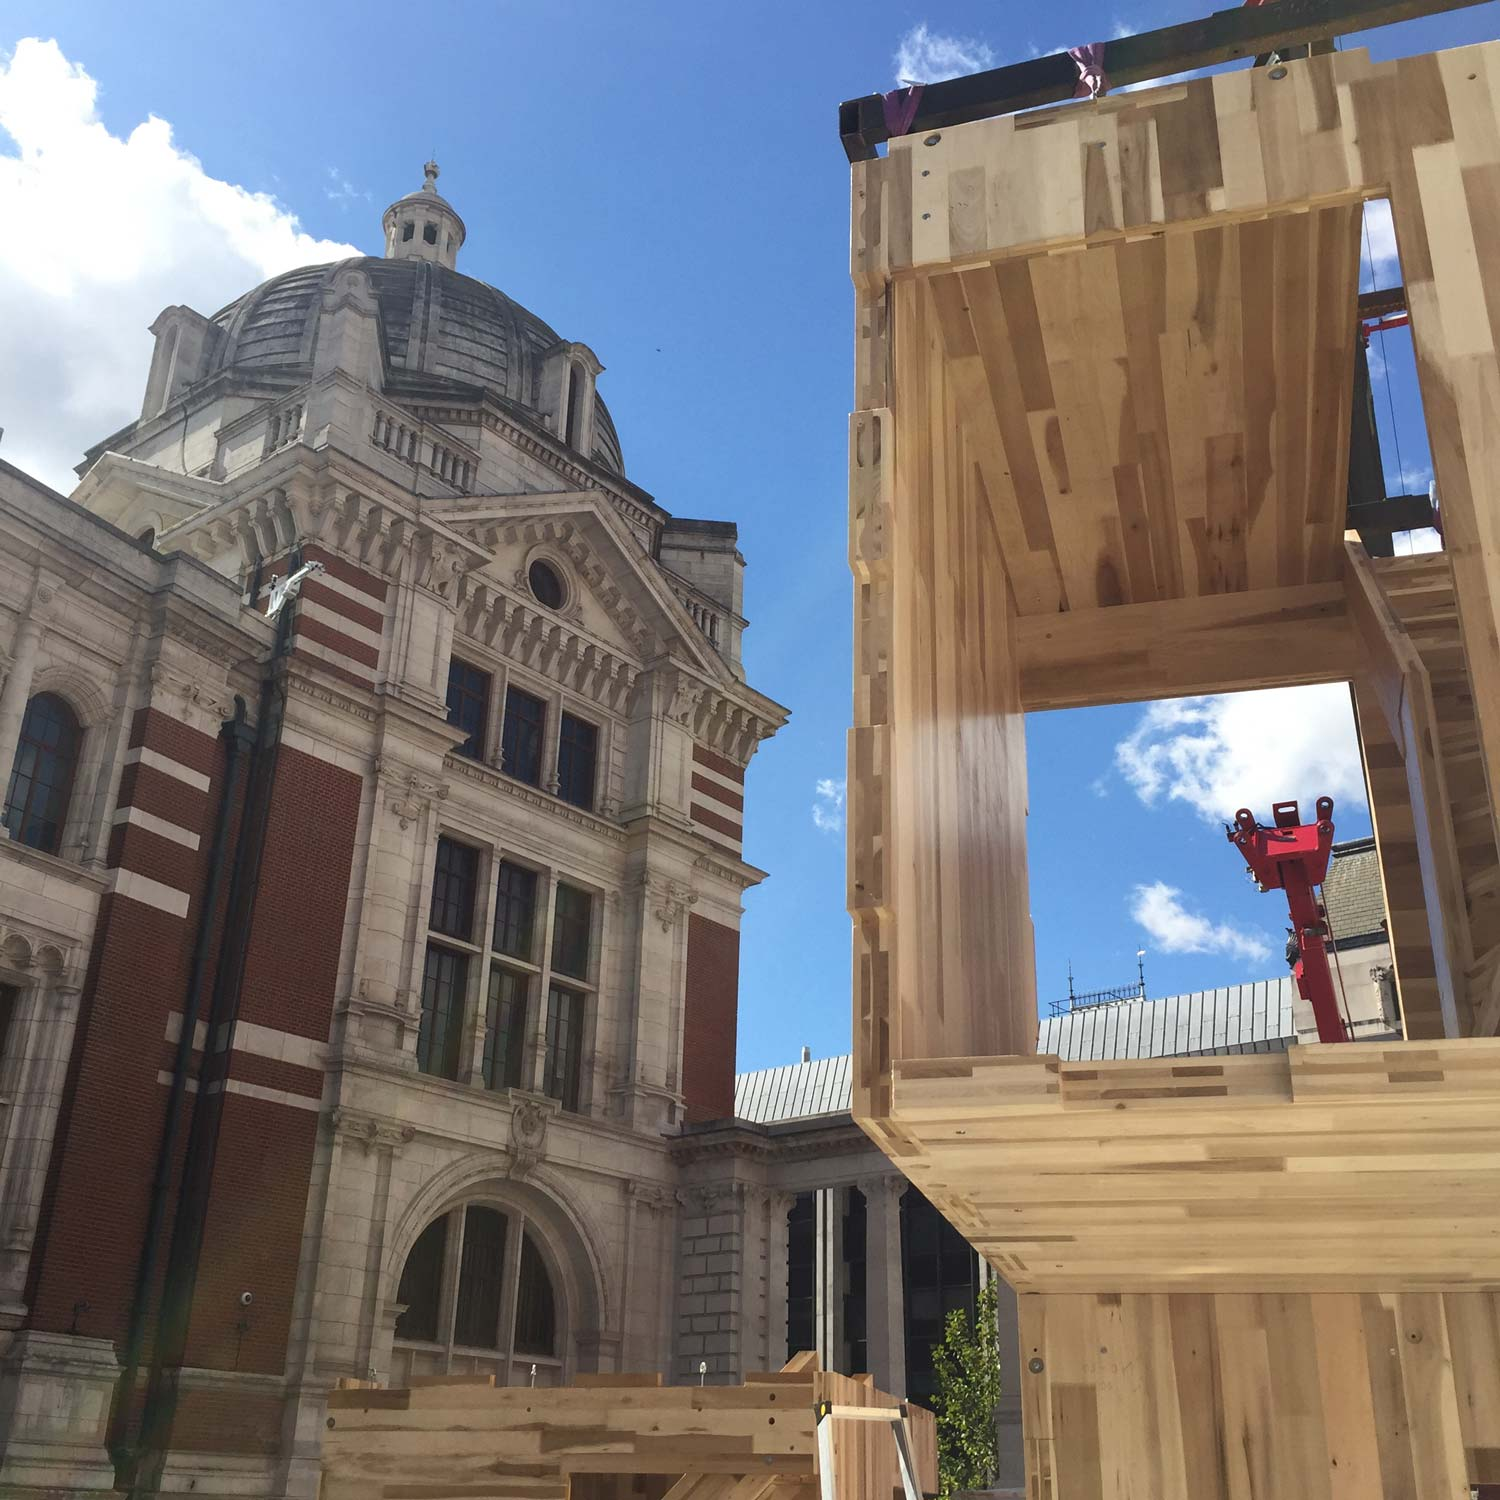 Re-configurable modular timber pavilion, Multiply, being constructed at the at the Sackler courtyard, V&A museum